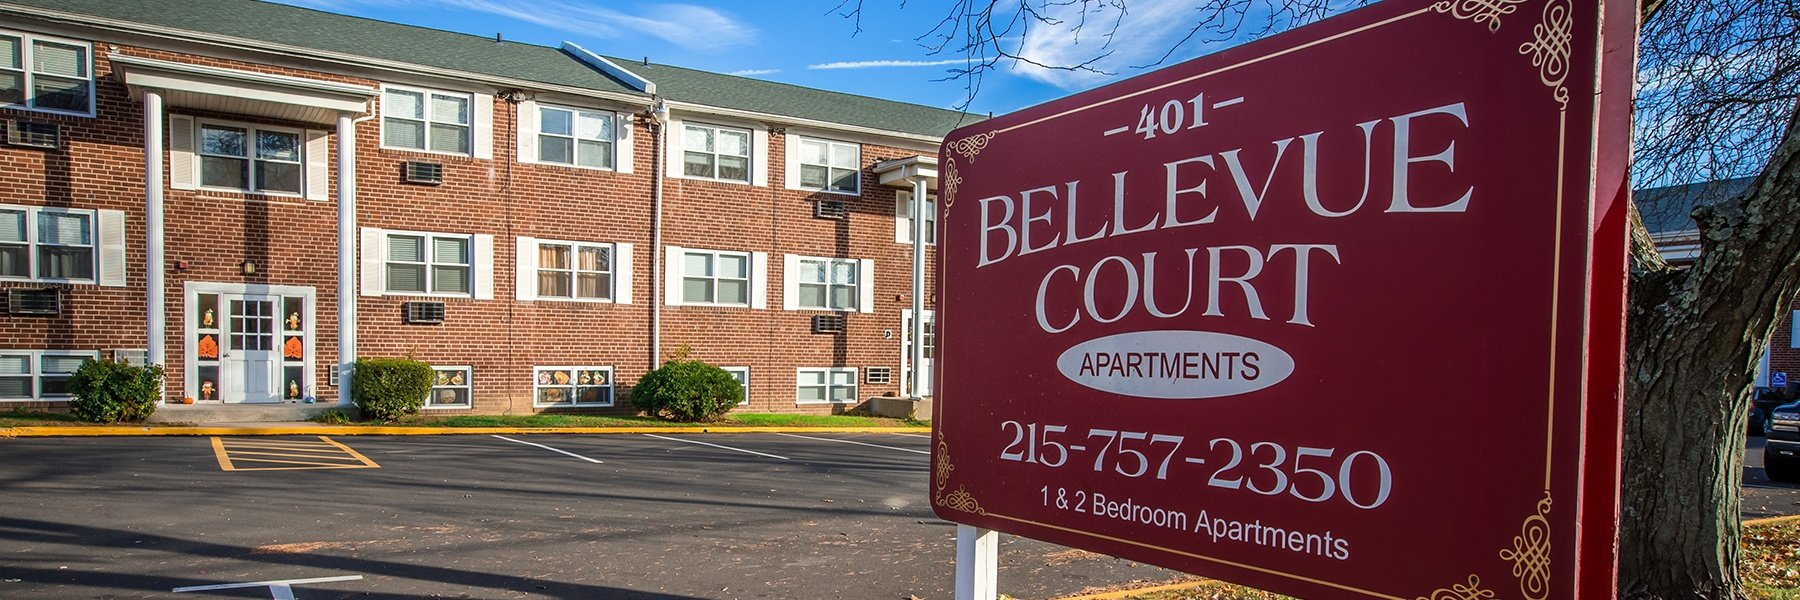 Bellevue Court Apartments For Rent in Penndel, PA Welcome